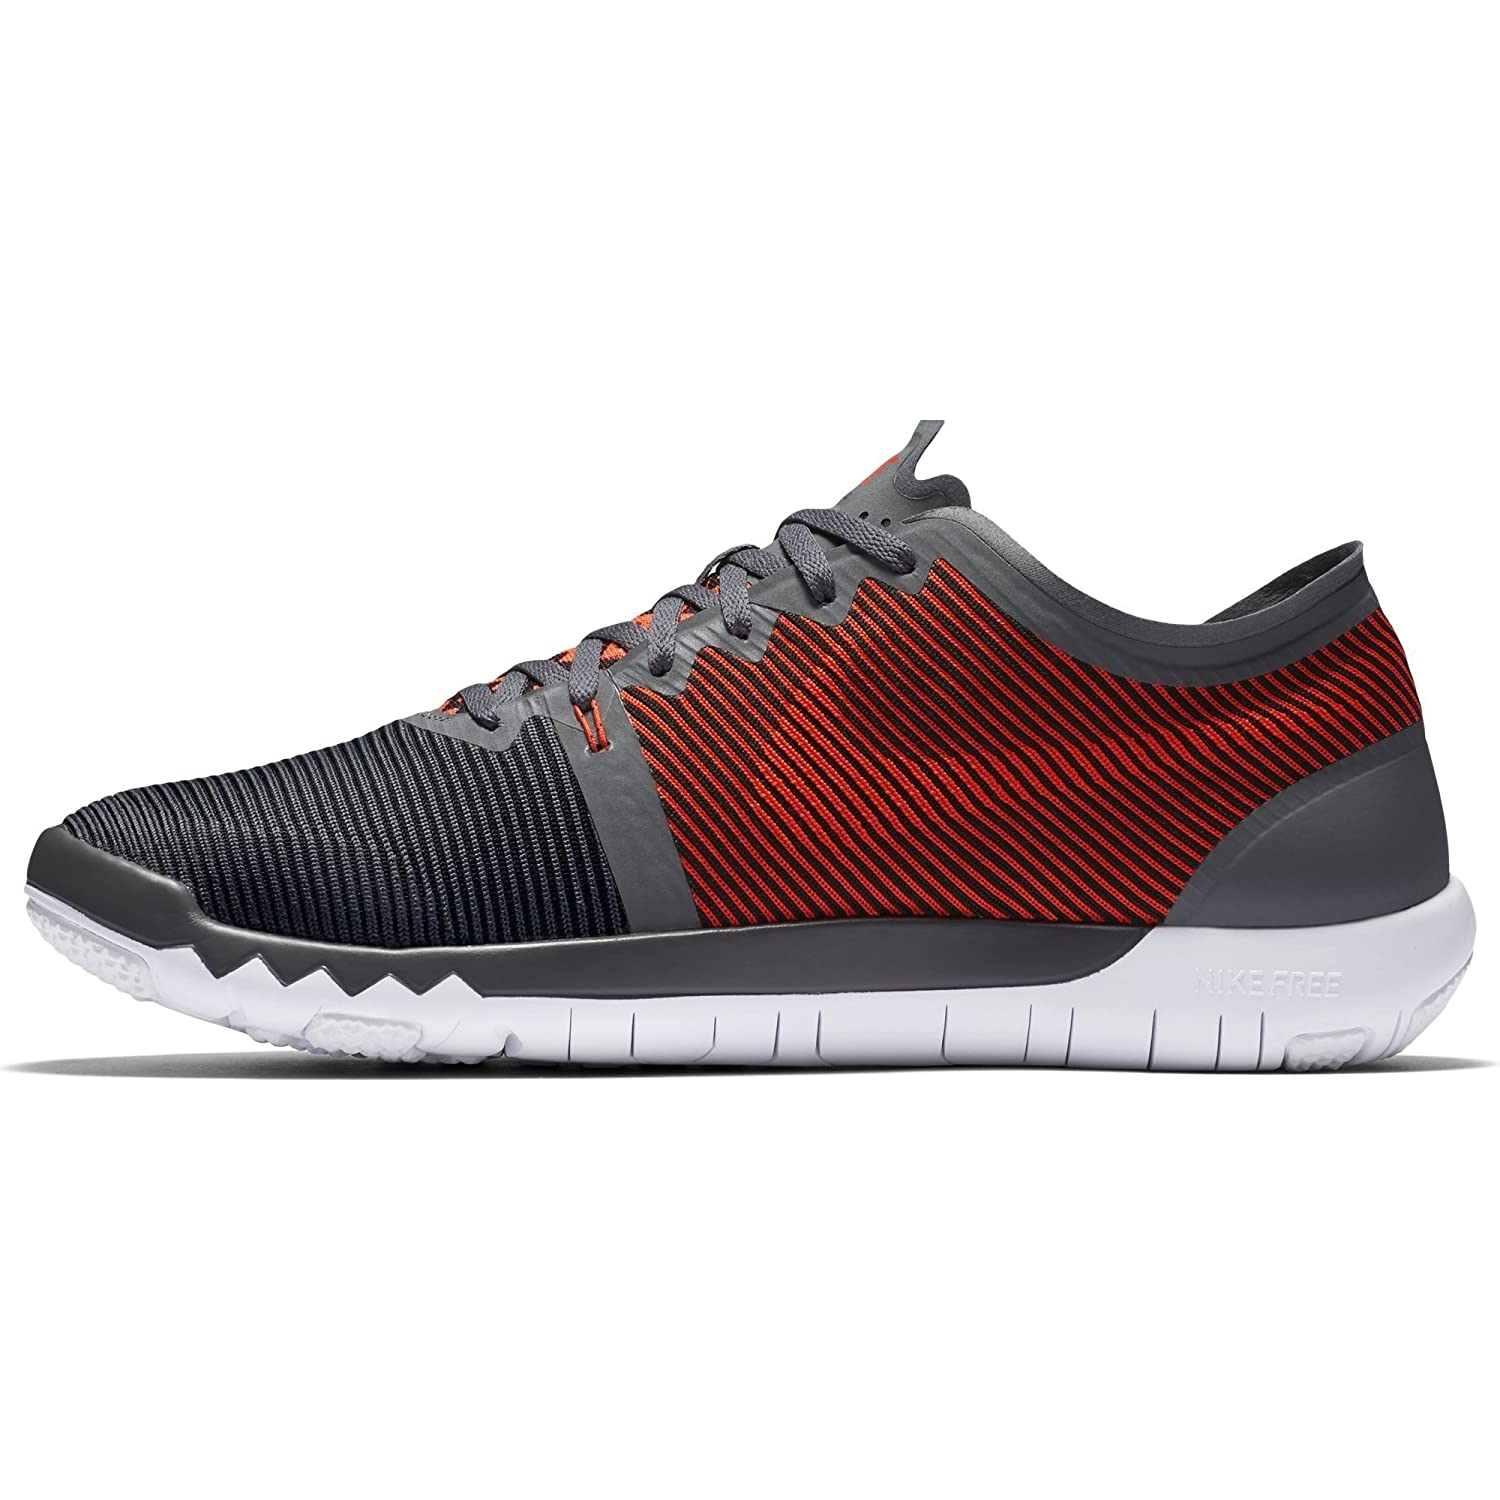 new concept 46395 43eea Amazon.com | NIKE MEN FREE TRAINER 3.0 V4 DARK GREY/BRIGHT ...